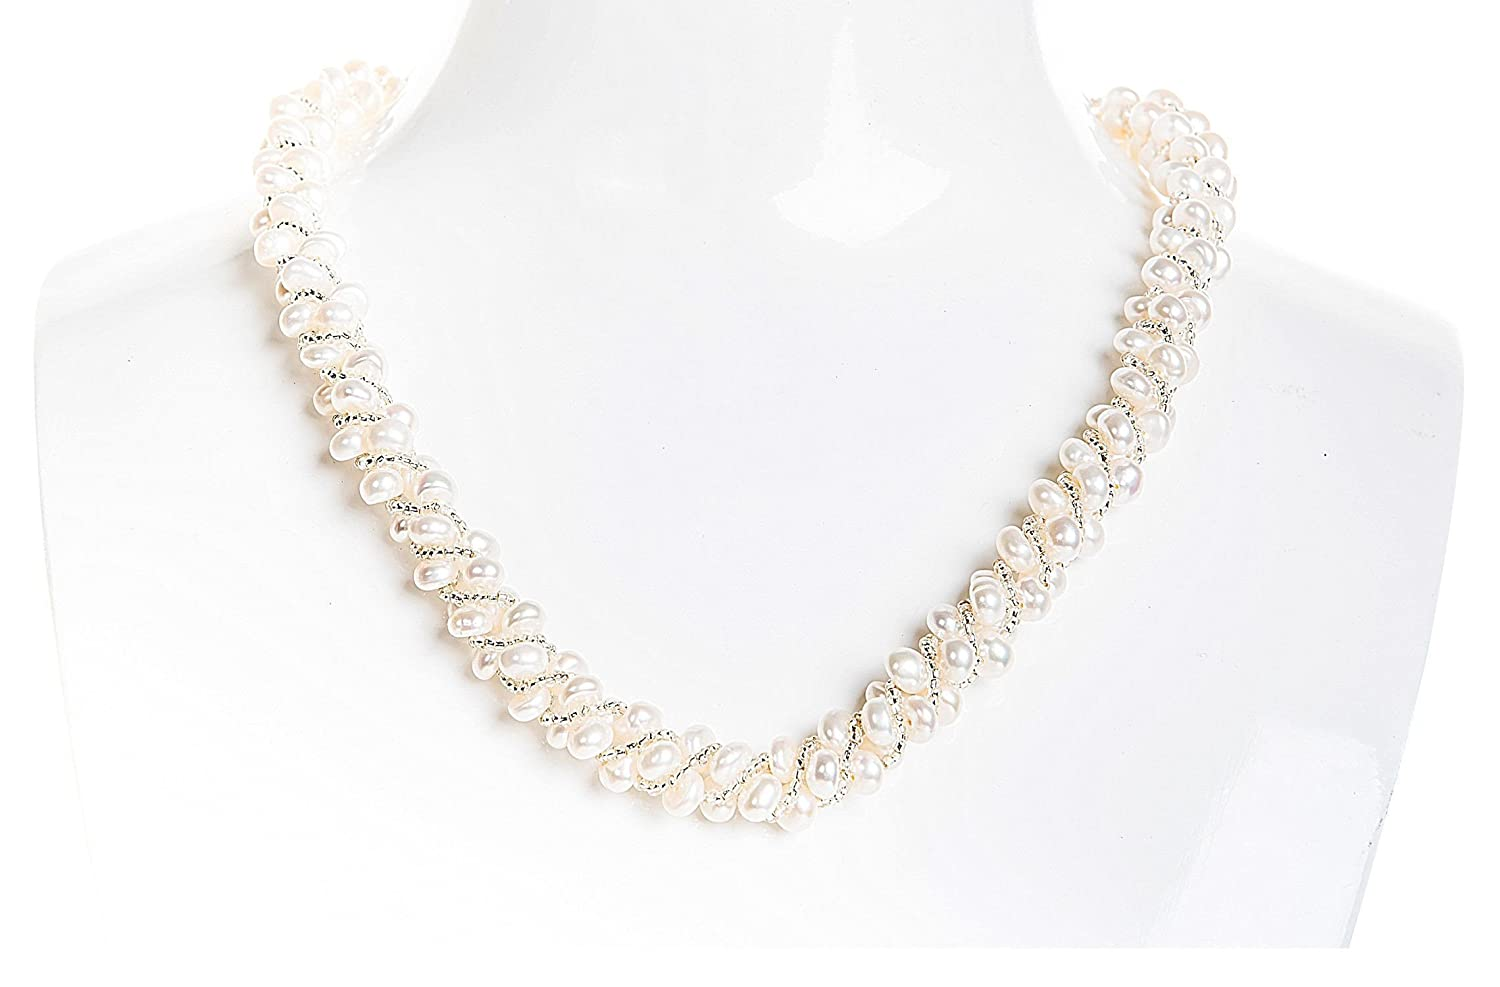 cf9a91e73bb Amazon.com  Braided White Multi Strand Freshwater Pearl Necklace 6mm   Jewelry